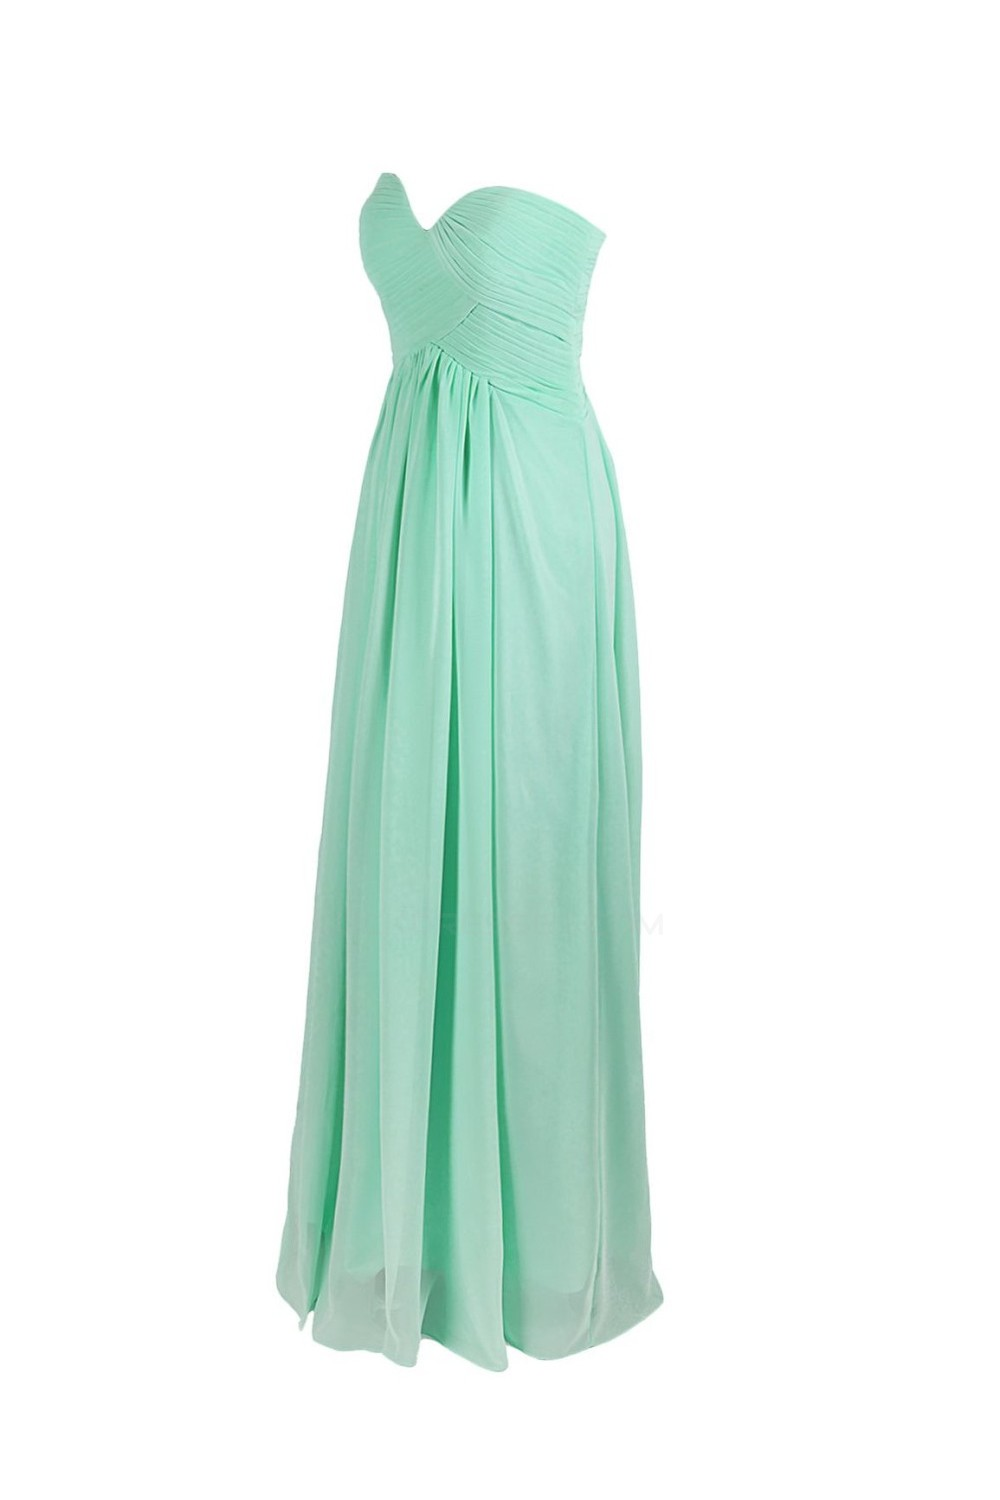 Empire Sweetheart Mint Green Long Chiffon Bridesmaid Dresses/Wedding ...